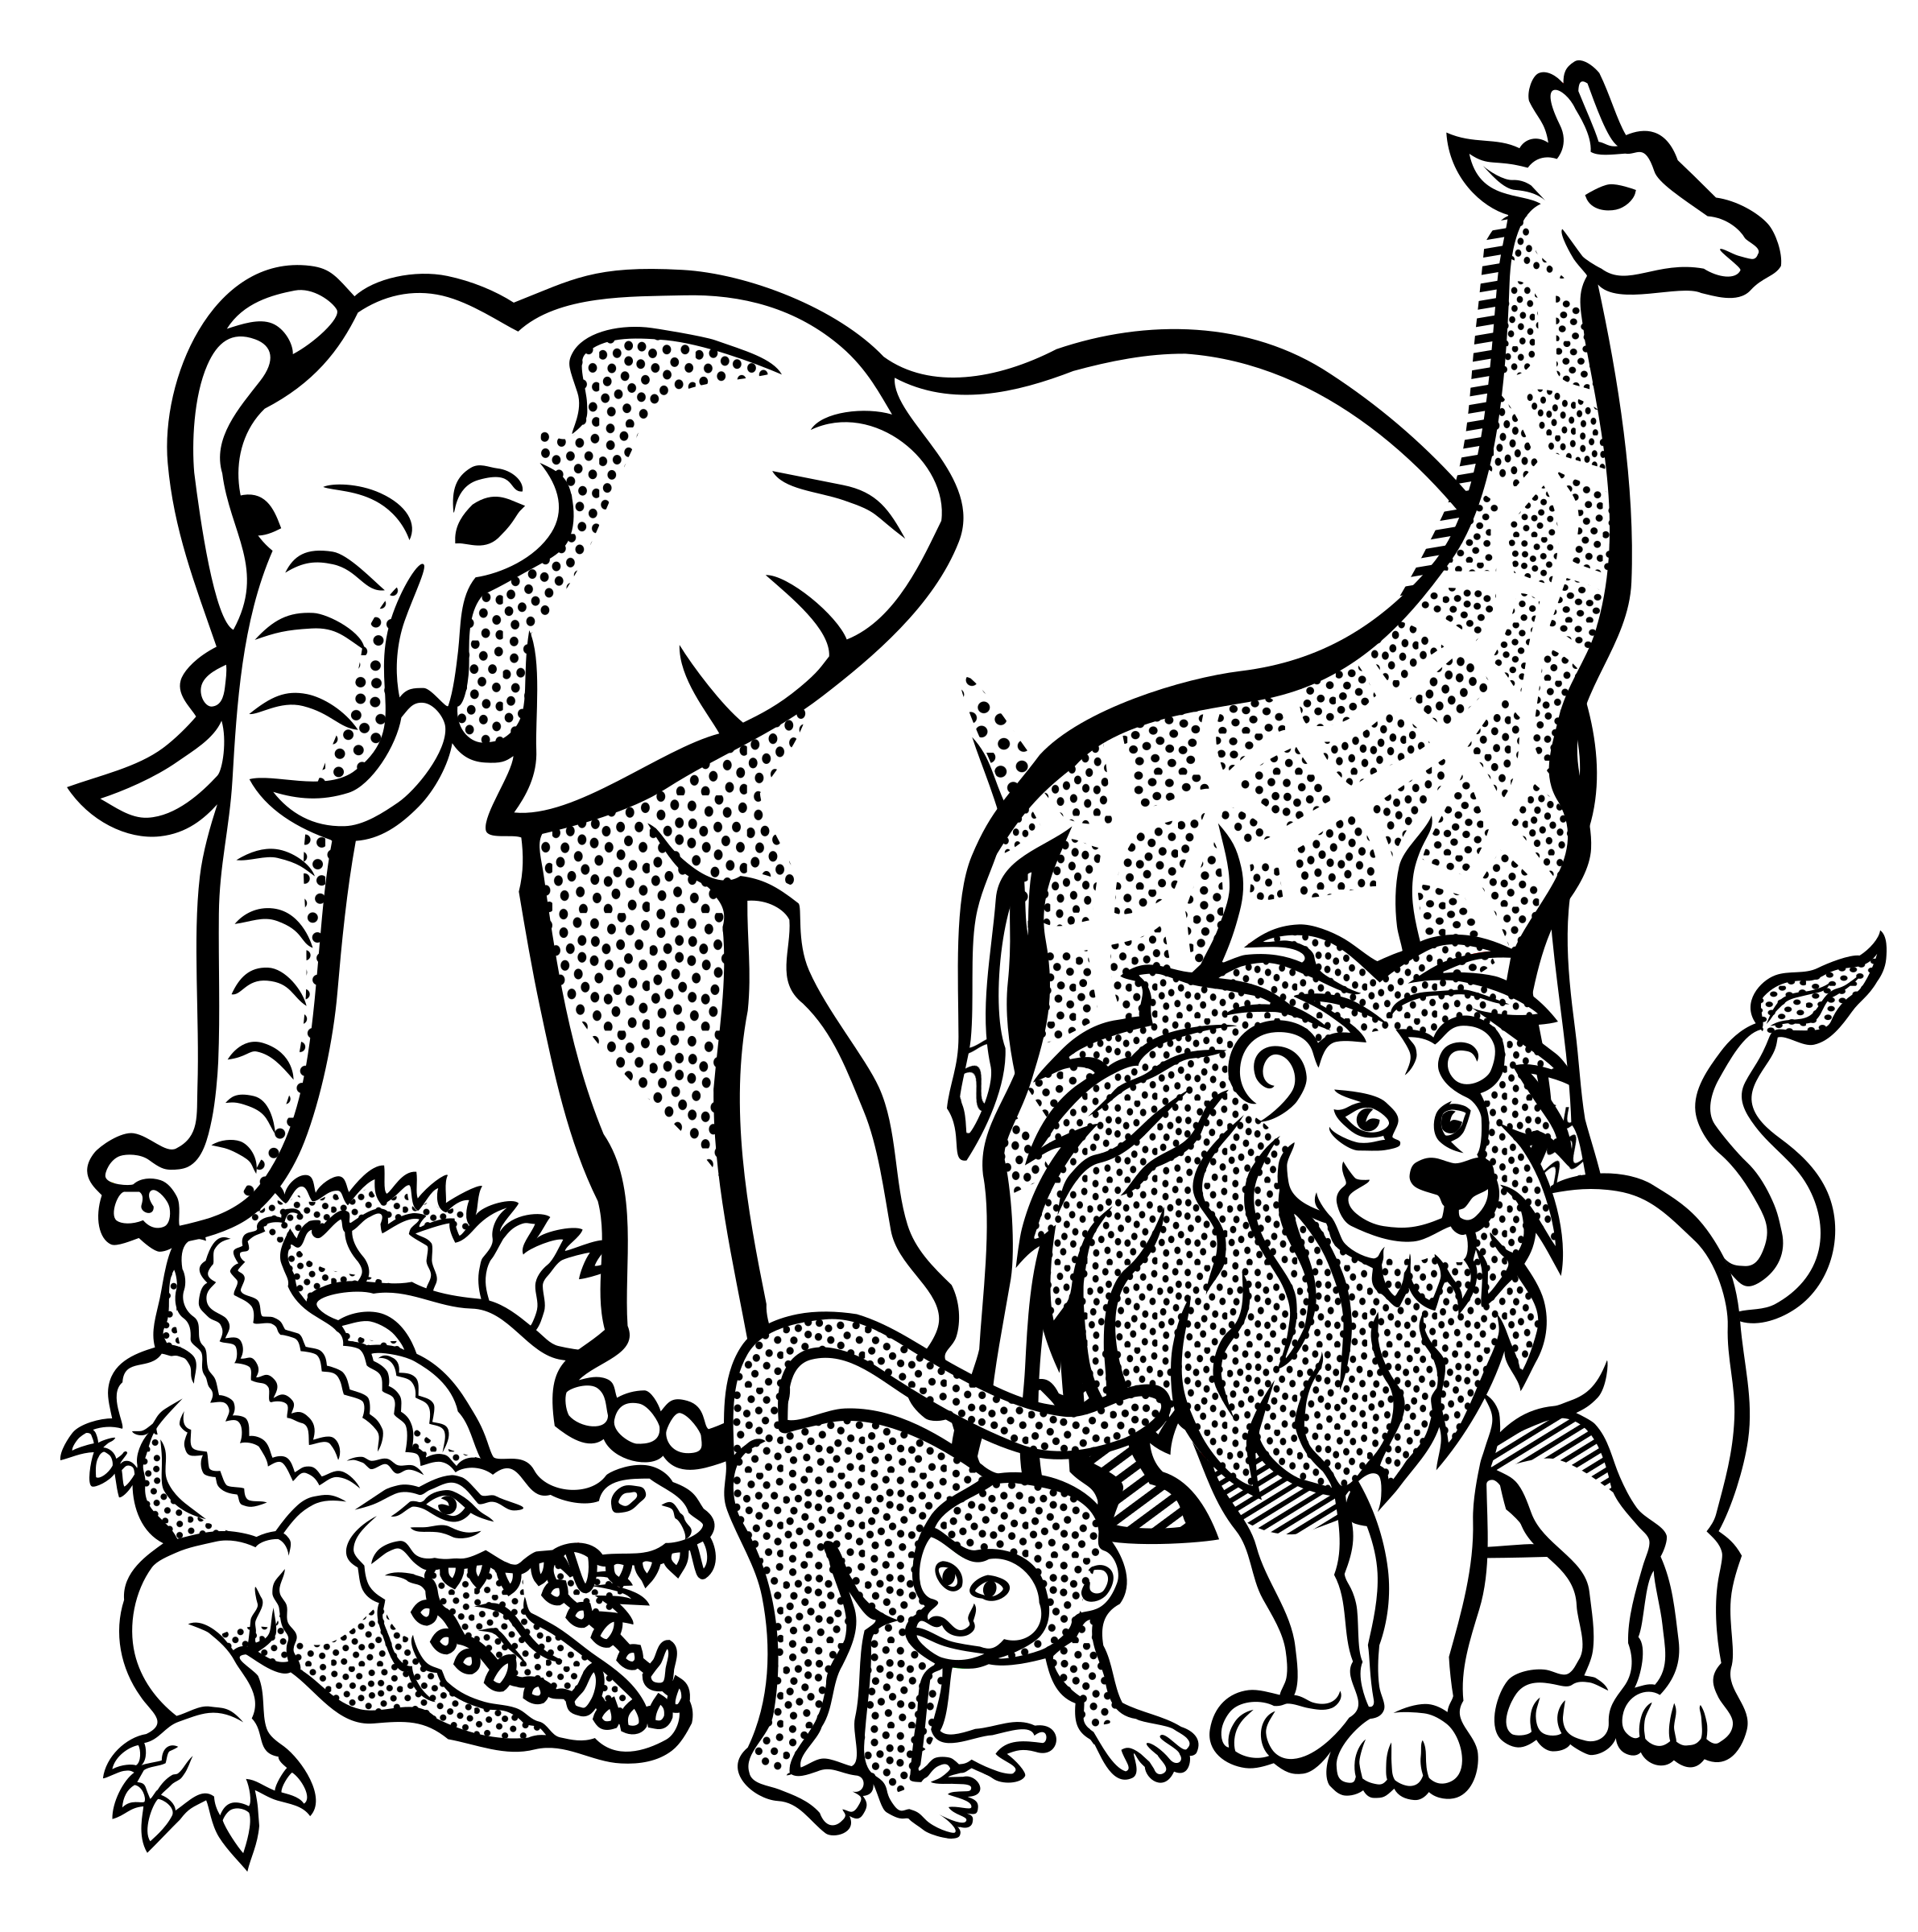 Jungle animals black and white clipart jpg royalty free library Unique Jungle Animals Clip Art Black And White Drawing » Free Vector ... jpg royalty free library